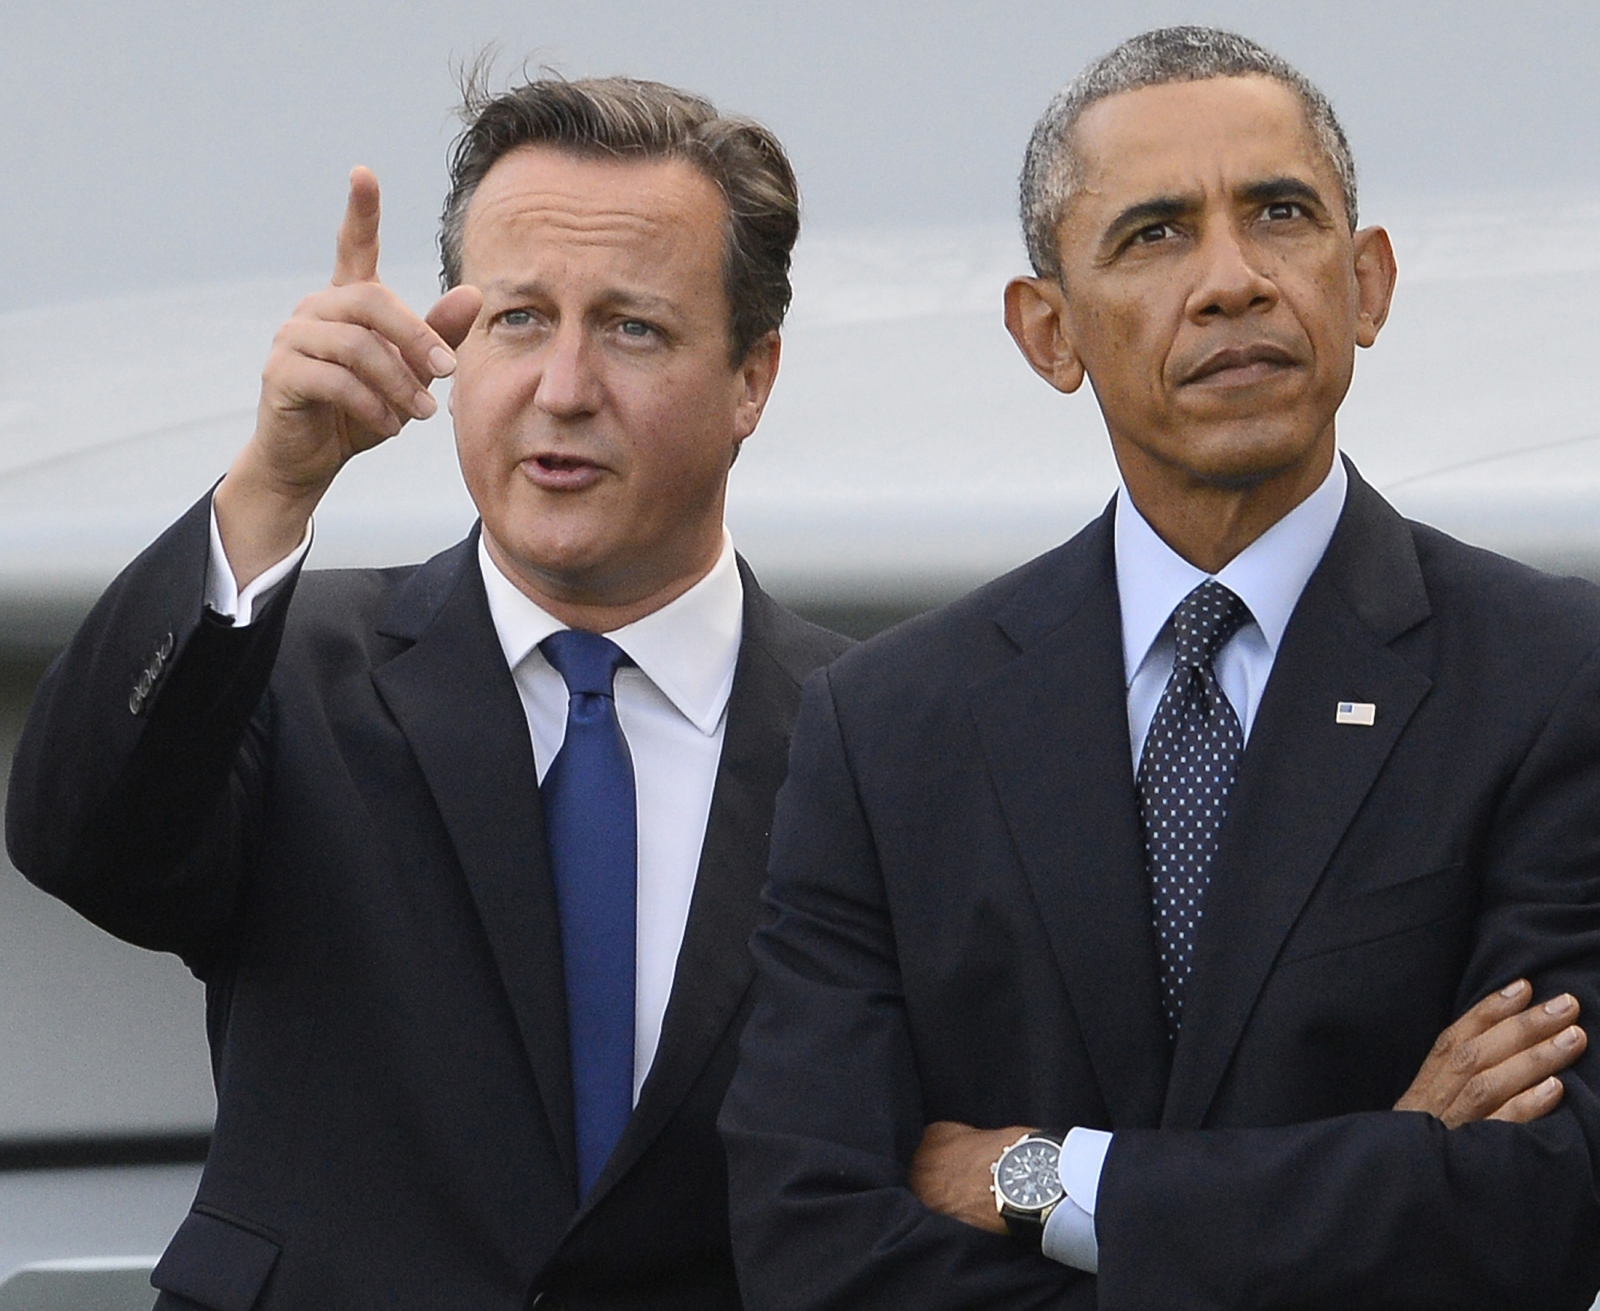 cameron and Obama at nato summit 2014 in wales